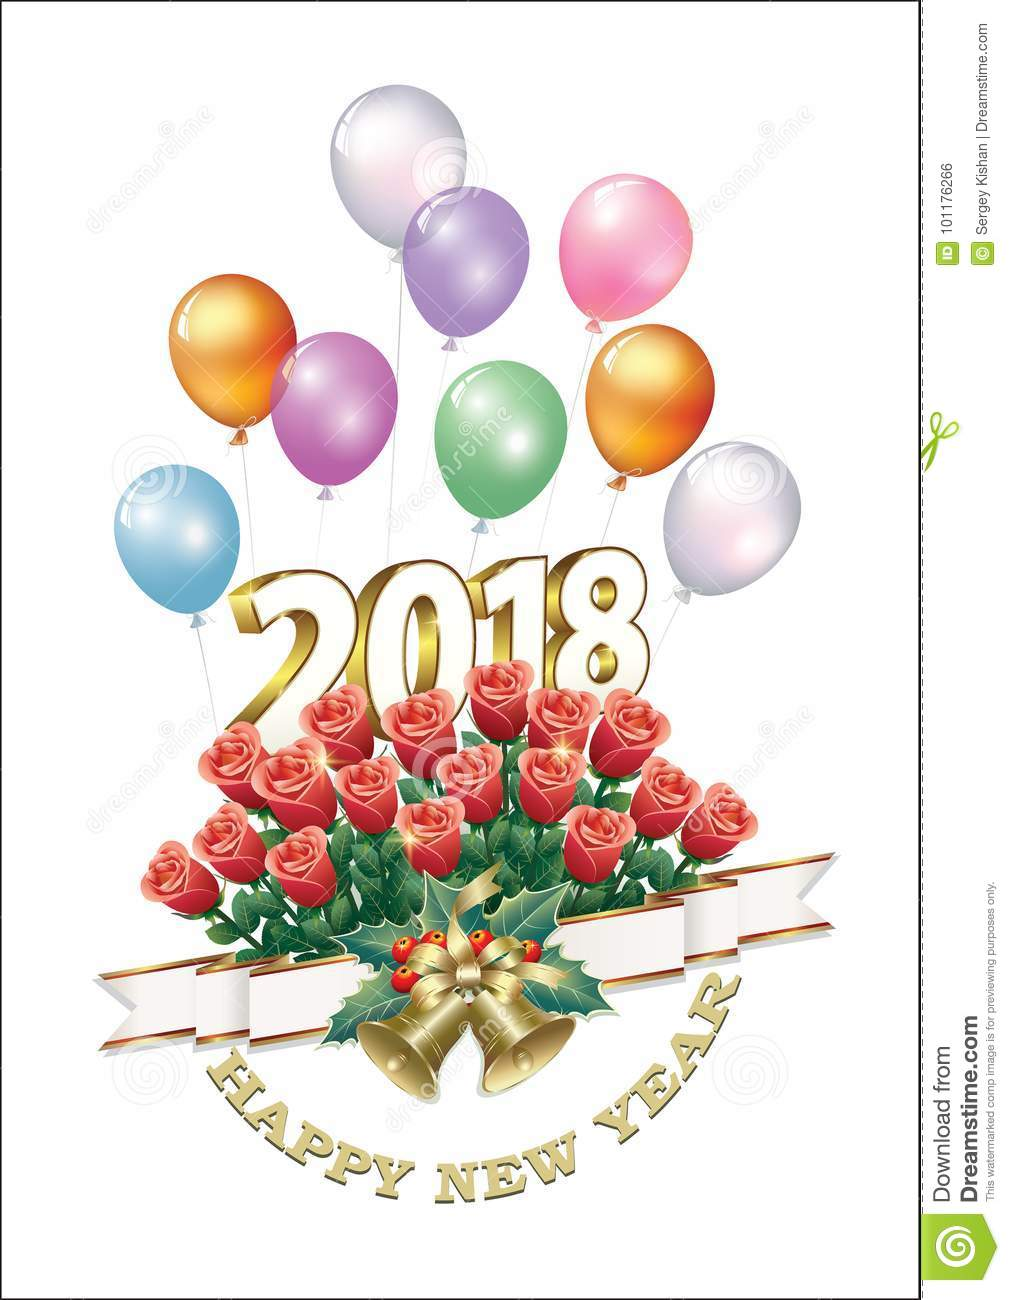 Happy Birthday In The New Year 2018 Stock Vector - Illustration of ...